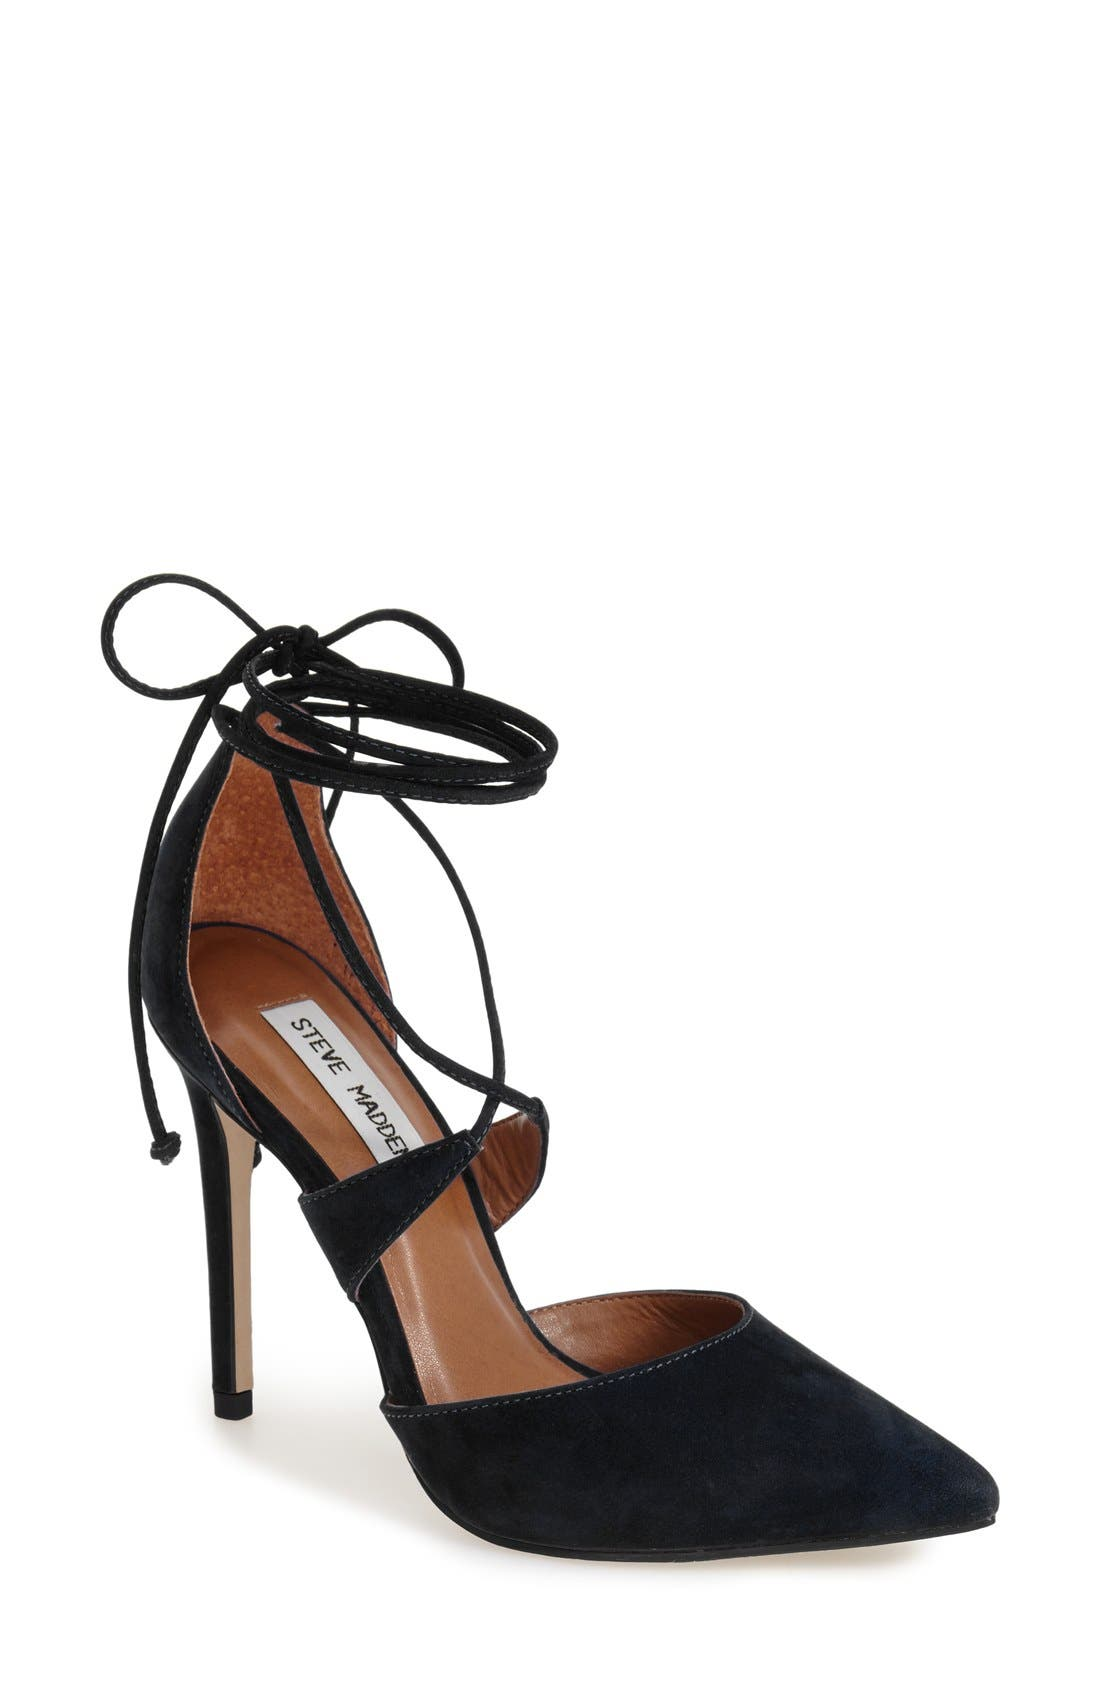 Alternate Image 1 Selected - Steve Madden 'Raela' Pump (Women)